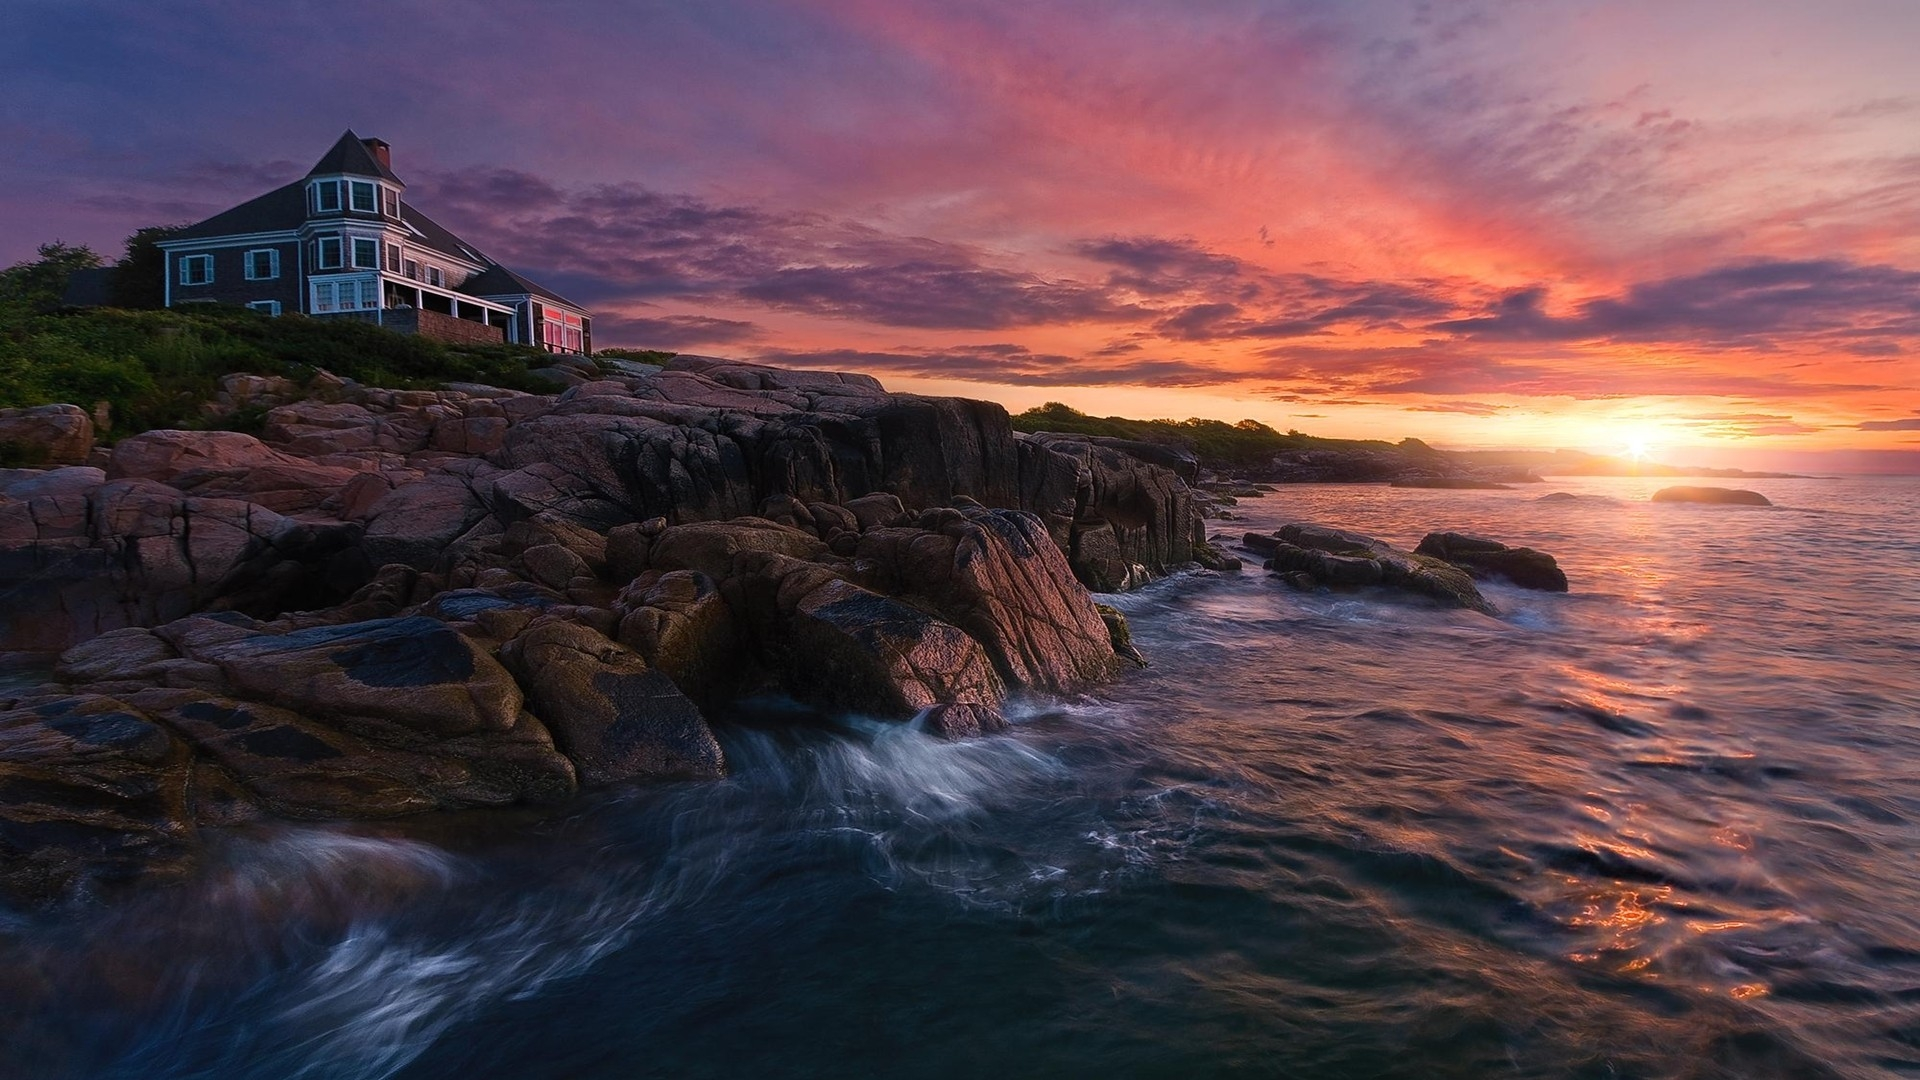 Sunset Over House On Rocky Coast HD Wallpaper